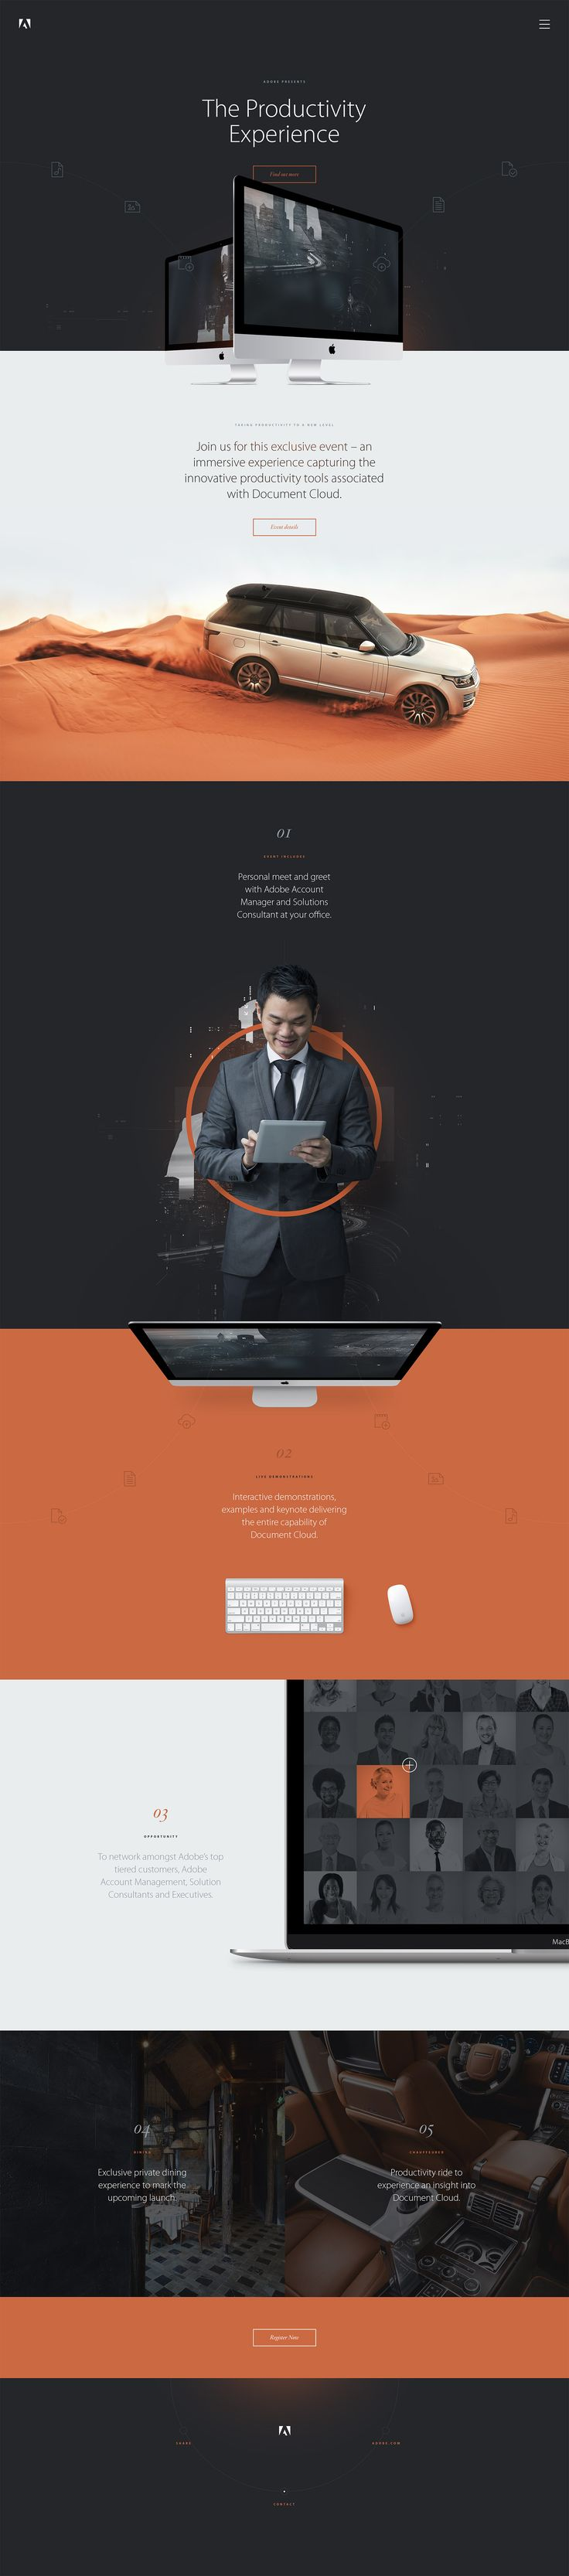 Twofold is a boutique, creative, web design and graphic design studio based in Brisbane. We work for clients in Melbourne, Sydney and throughout the world.